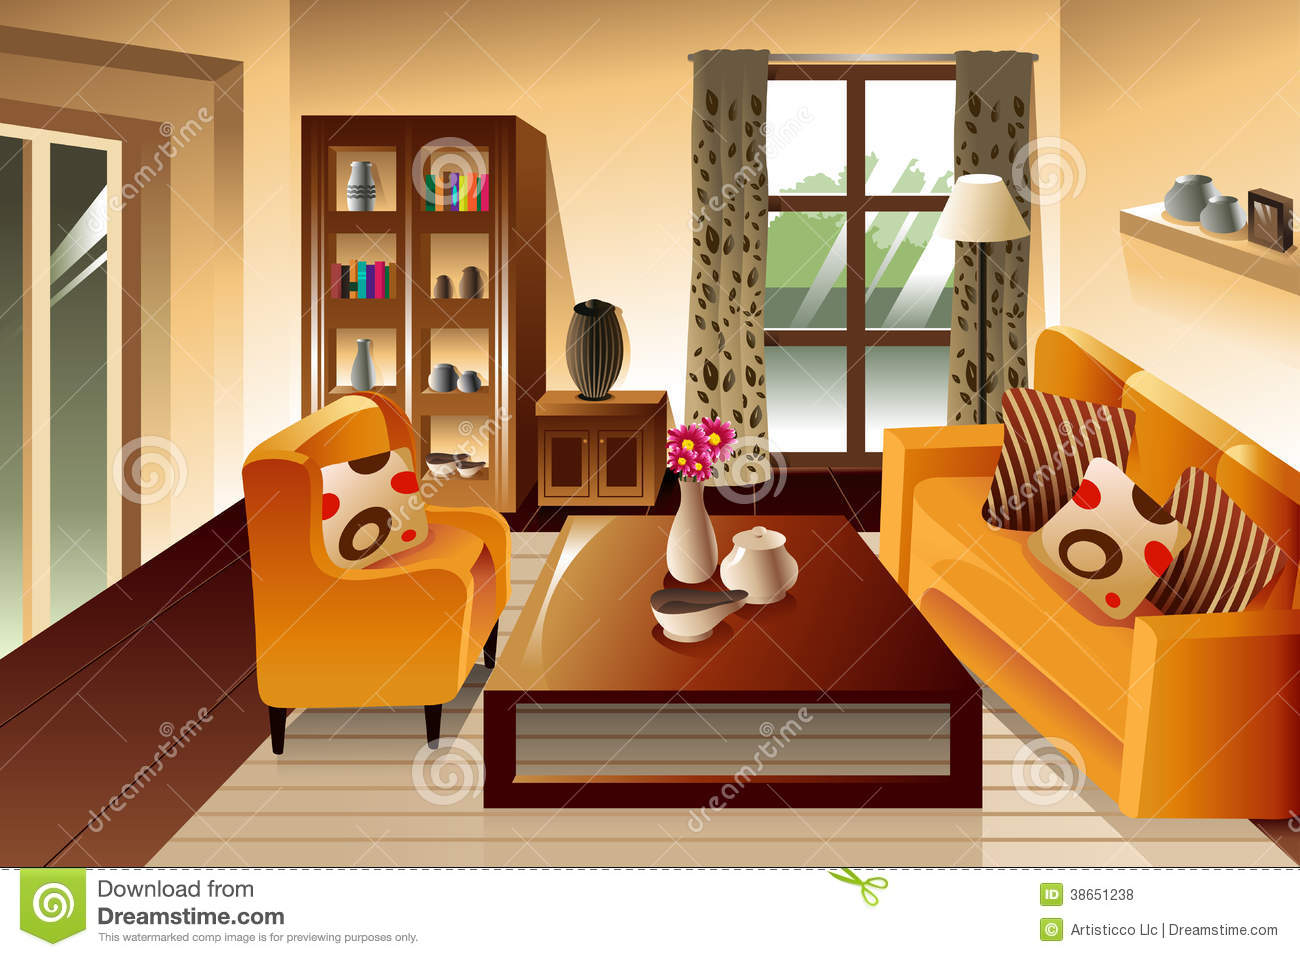 Clean living room clipart image freeuse stock Clean Living Room Clipart (91+ images in Collection) Page 2 image freeuse stock